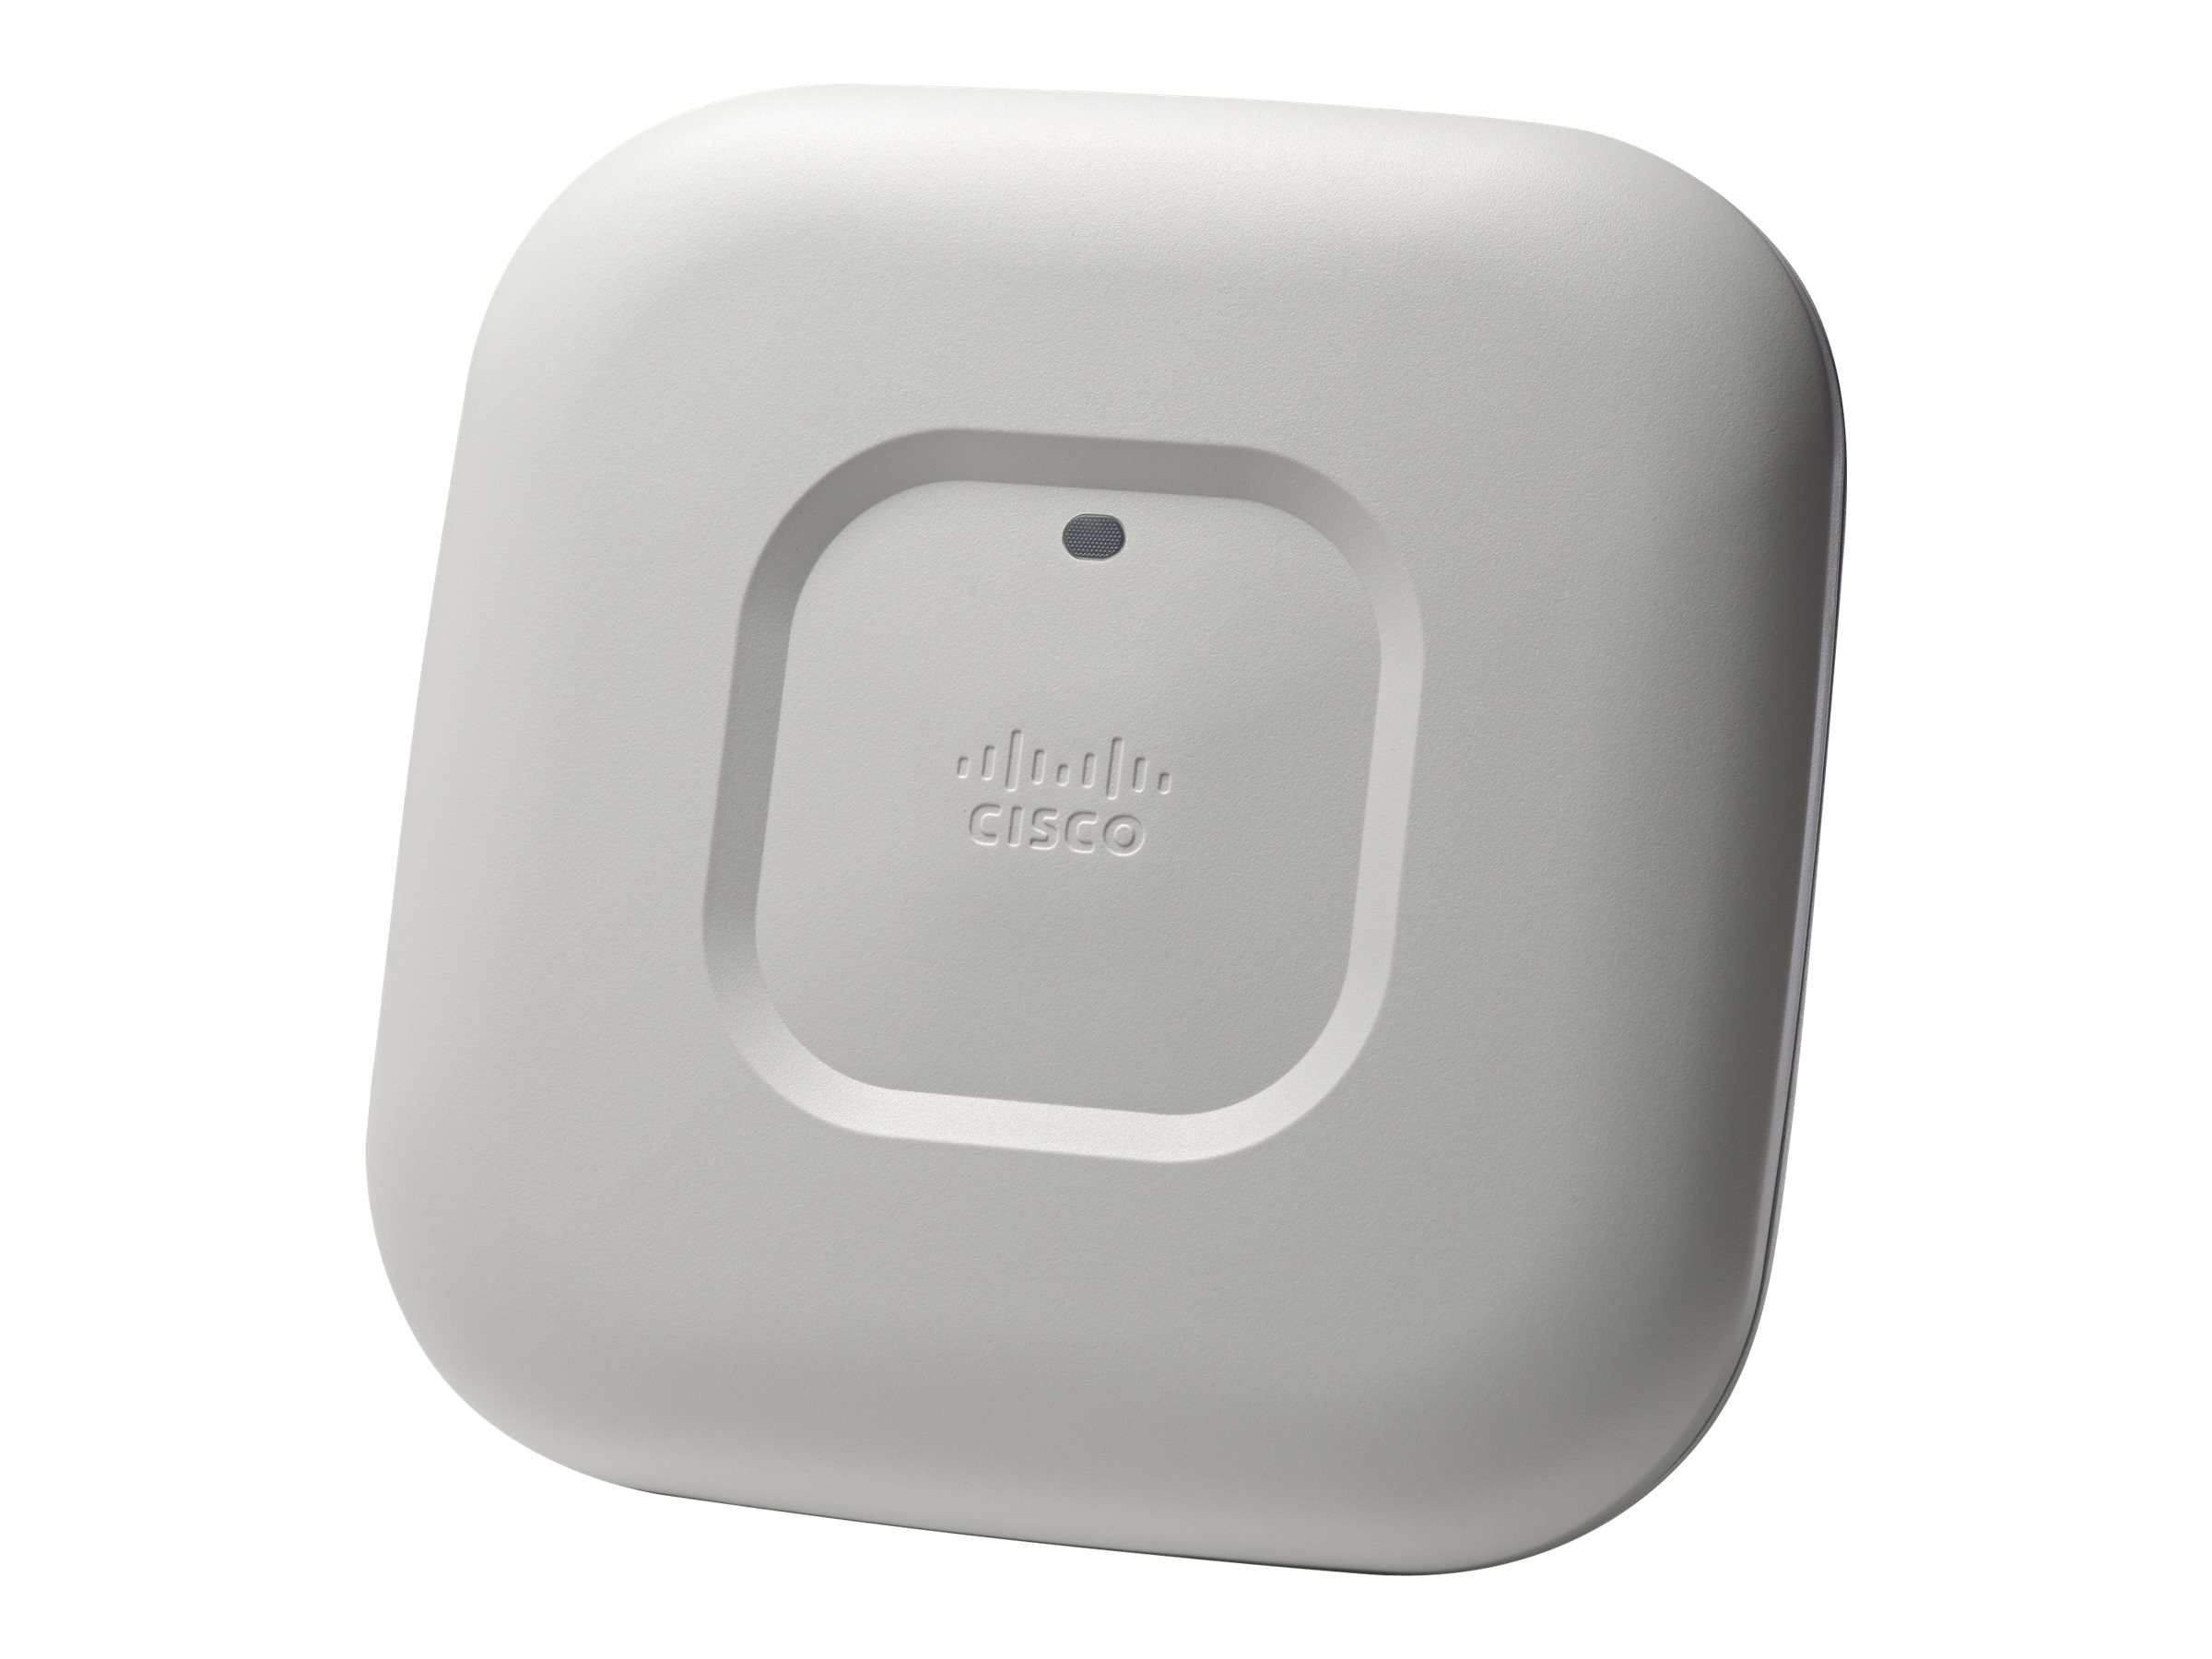 Cisco 1700 Series AP 802.11ac CAP, AIR-CAP1702I-A-K9, 17727396, Wireless Access Points & Bridges